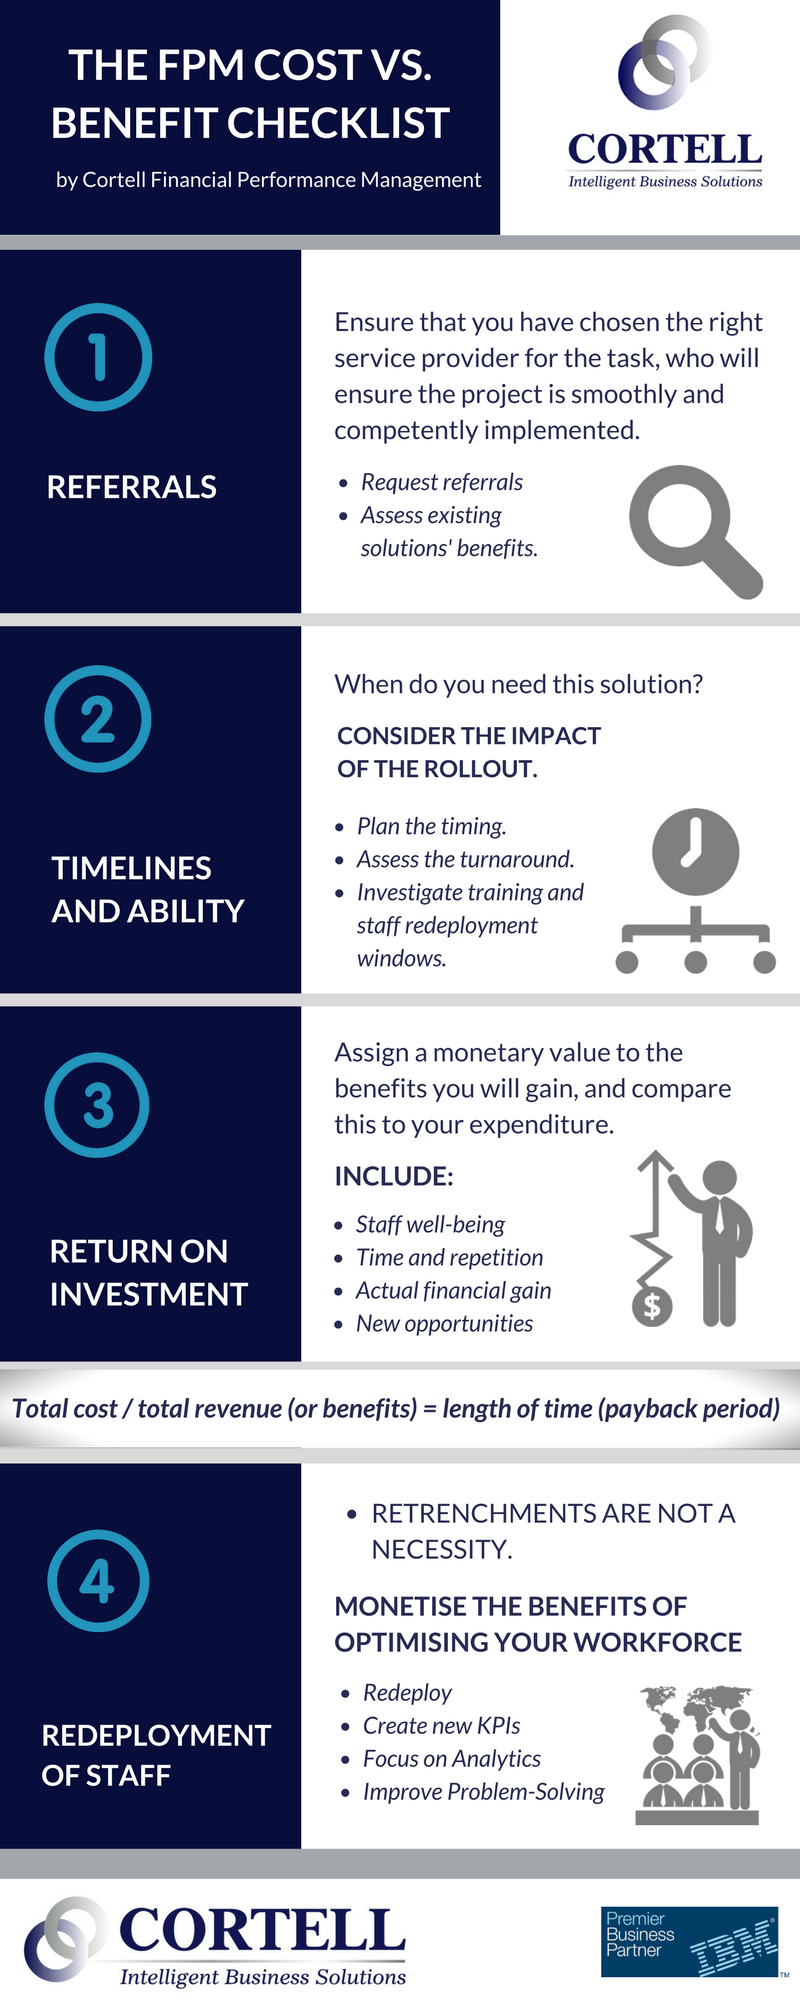 The financial performance management cost vs benefit checklist